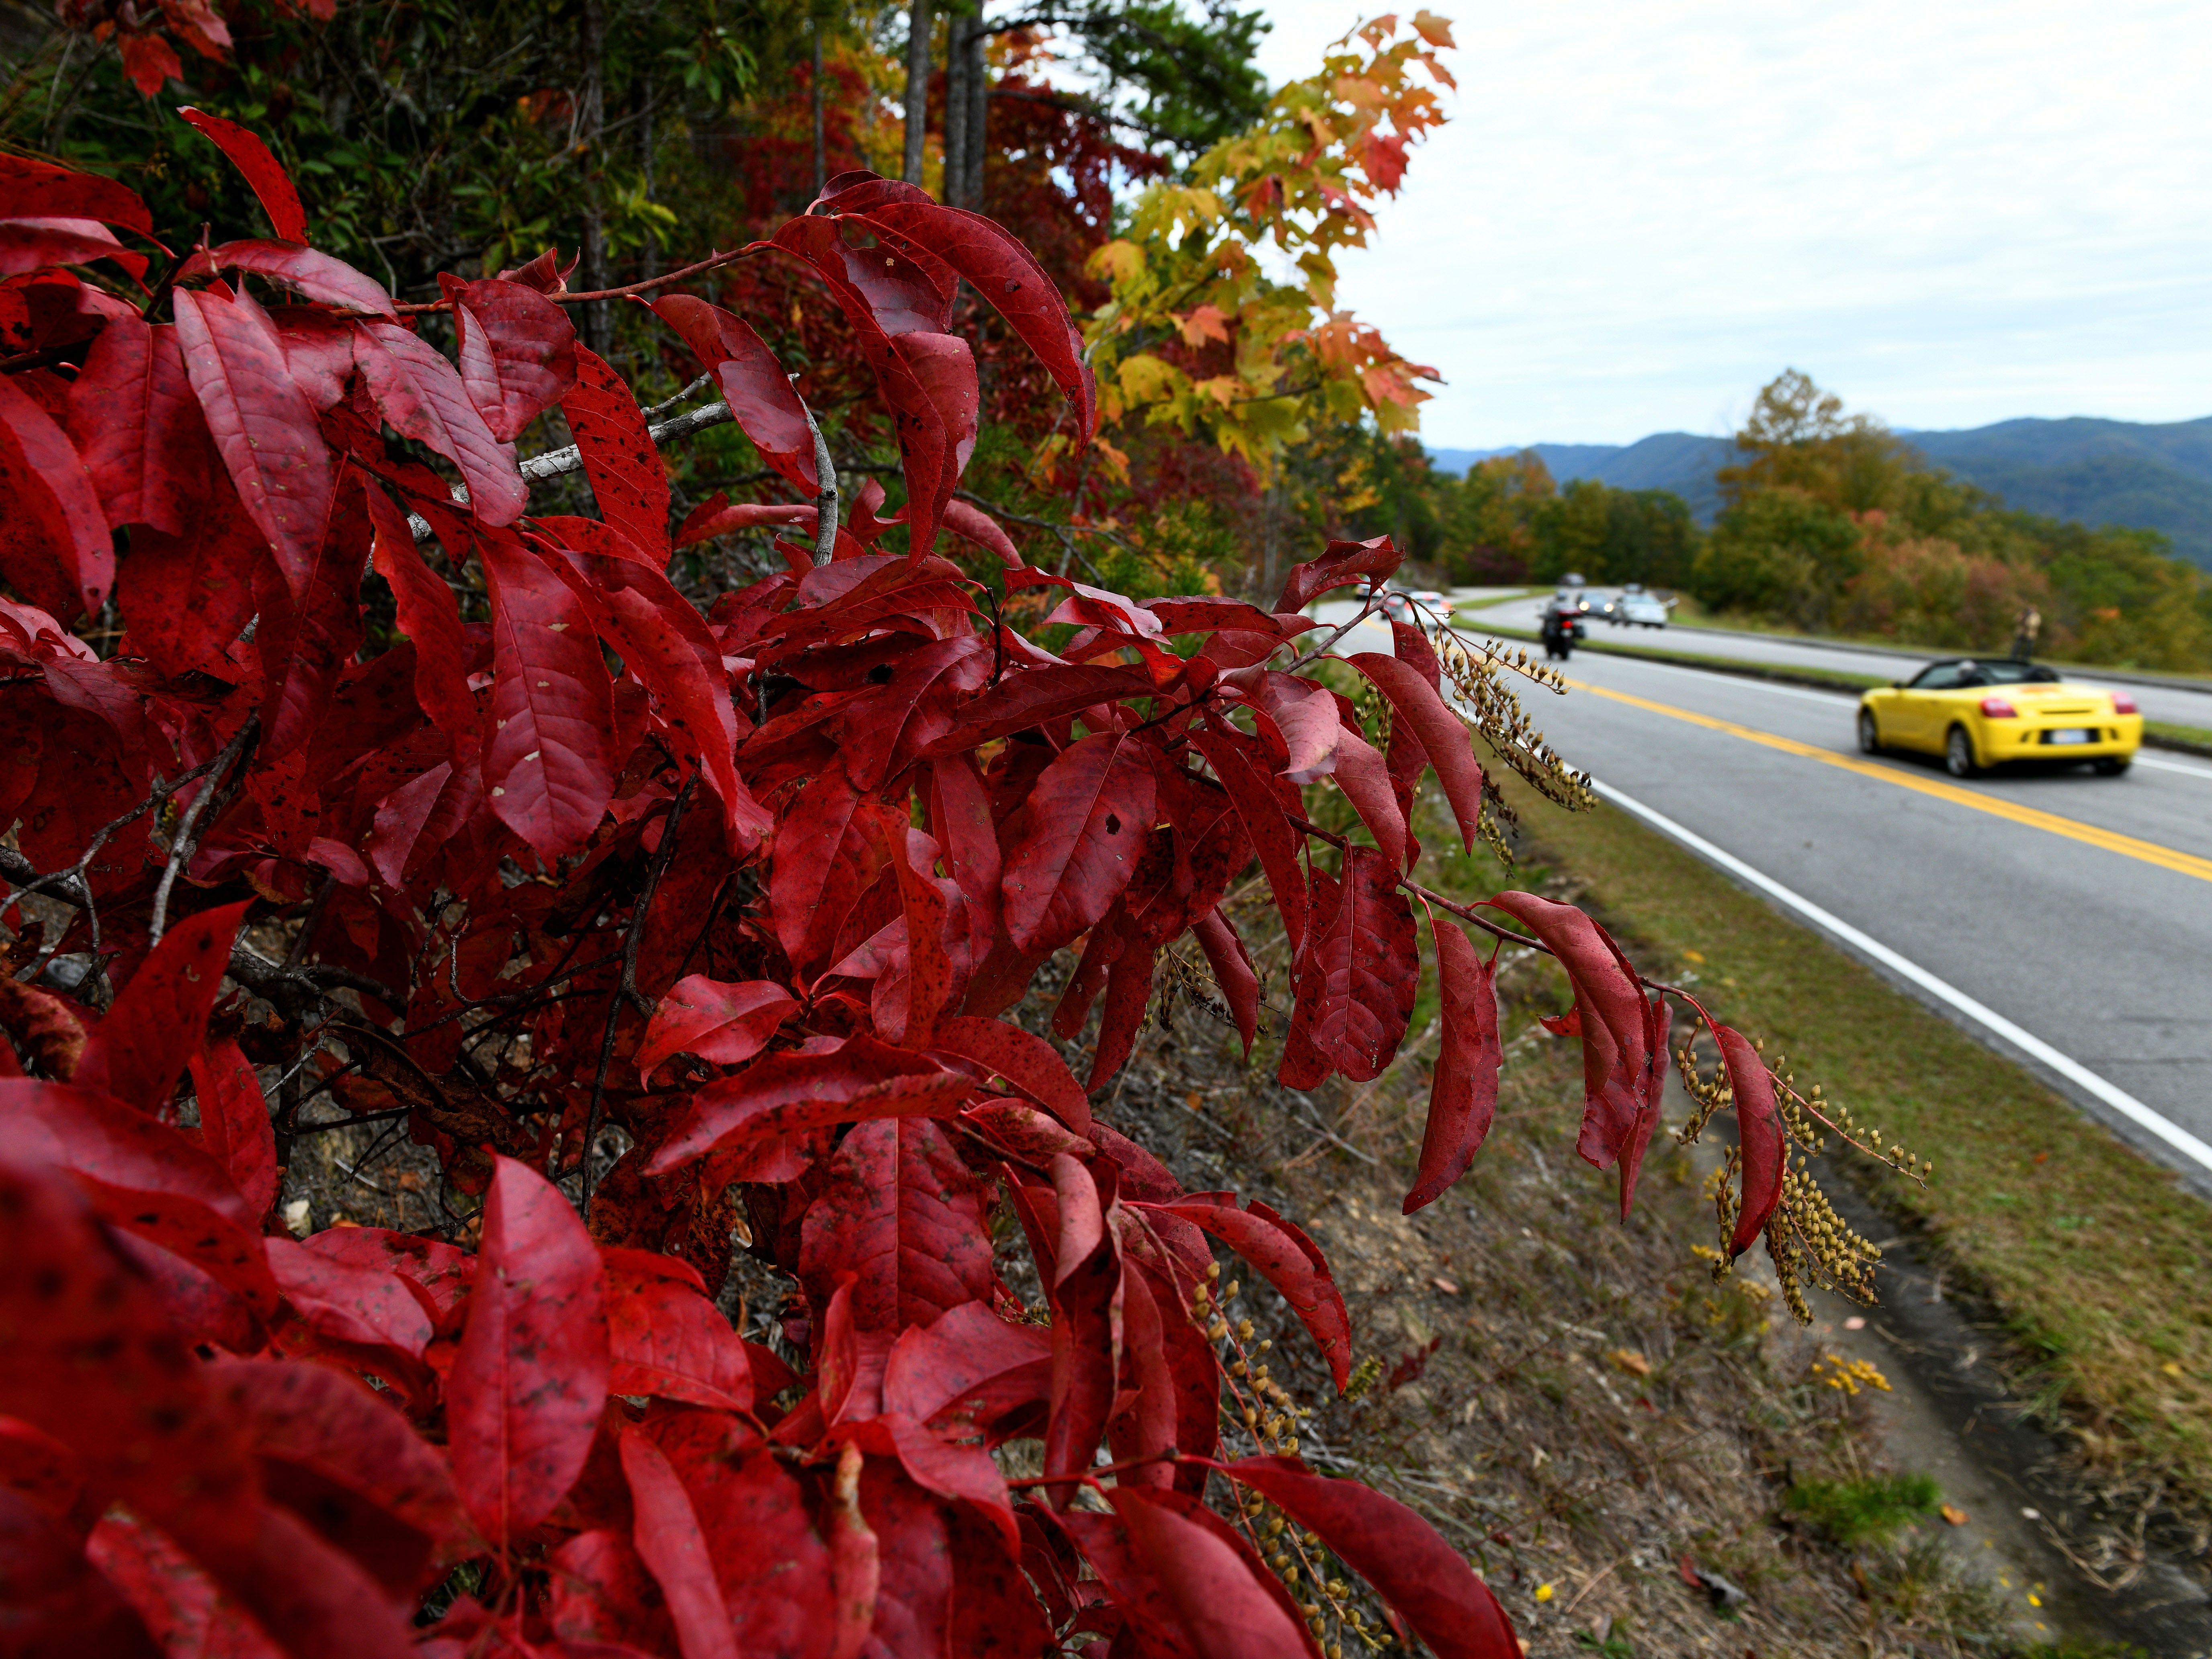 News Sentinel Photojournalist Michael Patrick took a photo safari looking for fall colors in Blount County Sunday, October 28, 2018.